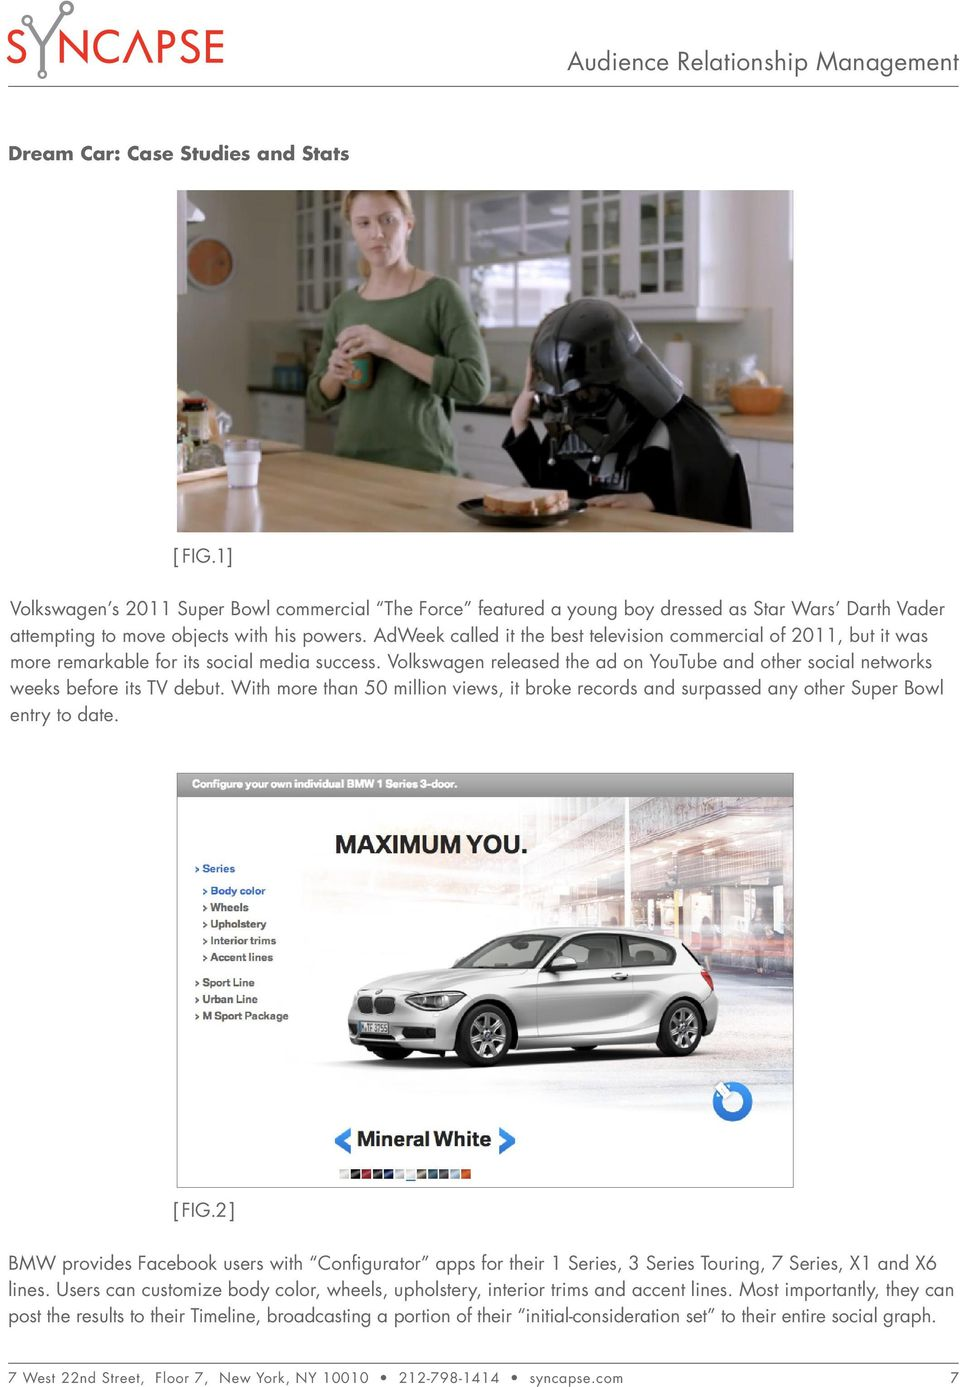 Volkswagen released the ad on YouTube and other social networks weeks before its TV debut. With more than 50 million views, it broke records and surpassed any other Super Bowl entry to date. [ Fig.